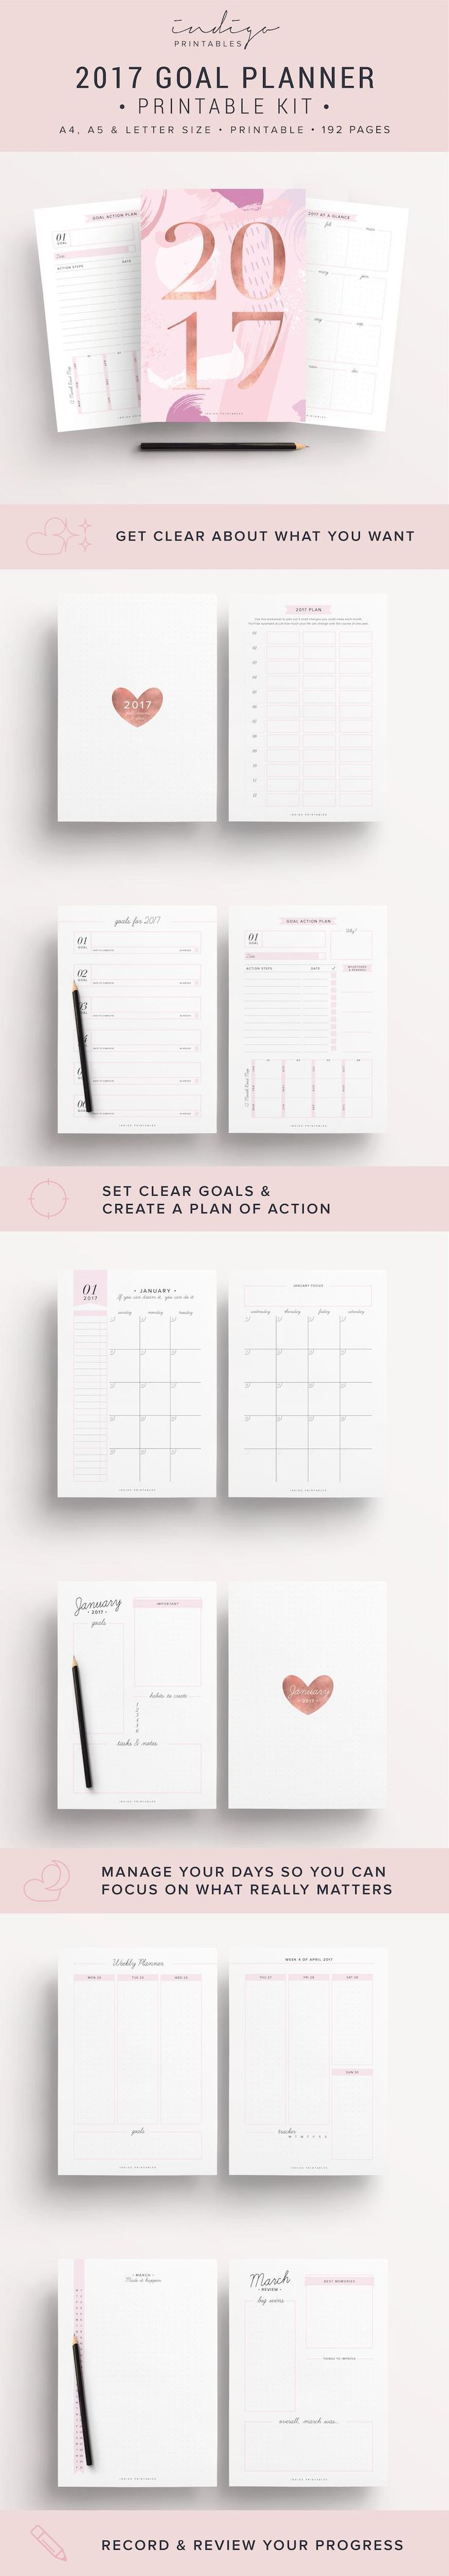 2017 Planner, Goal Planner, Monthly Planner 2017, Weekly Planner 2017, Success Planner, 2017 Inserts, 2017 Printable Planner, 2017 Agenda || 2017 Planner, 192 Printable Pages | Created by #IndigoPrintables Más